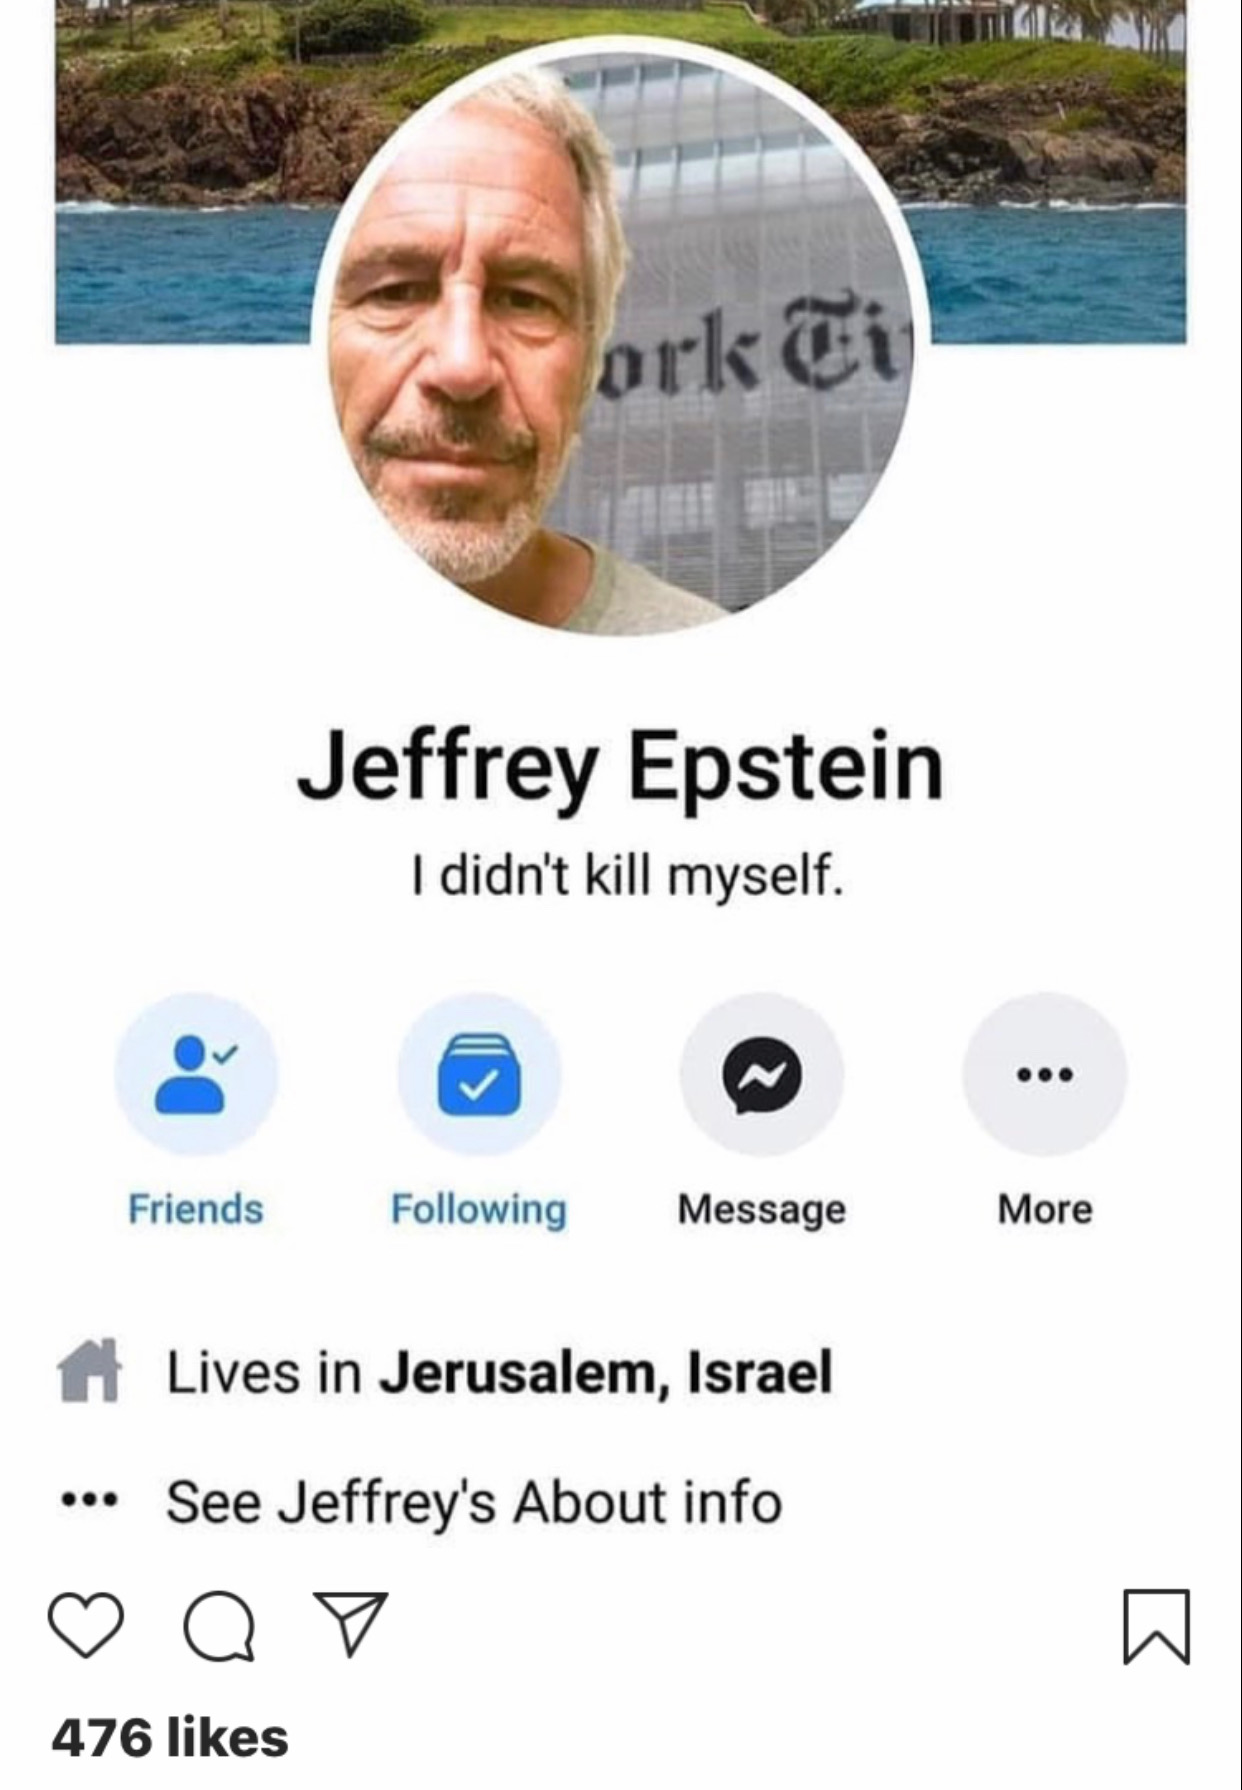 10 Memes For Everyone Who Knows Jeffrey Epstein Didn't Kill Himself